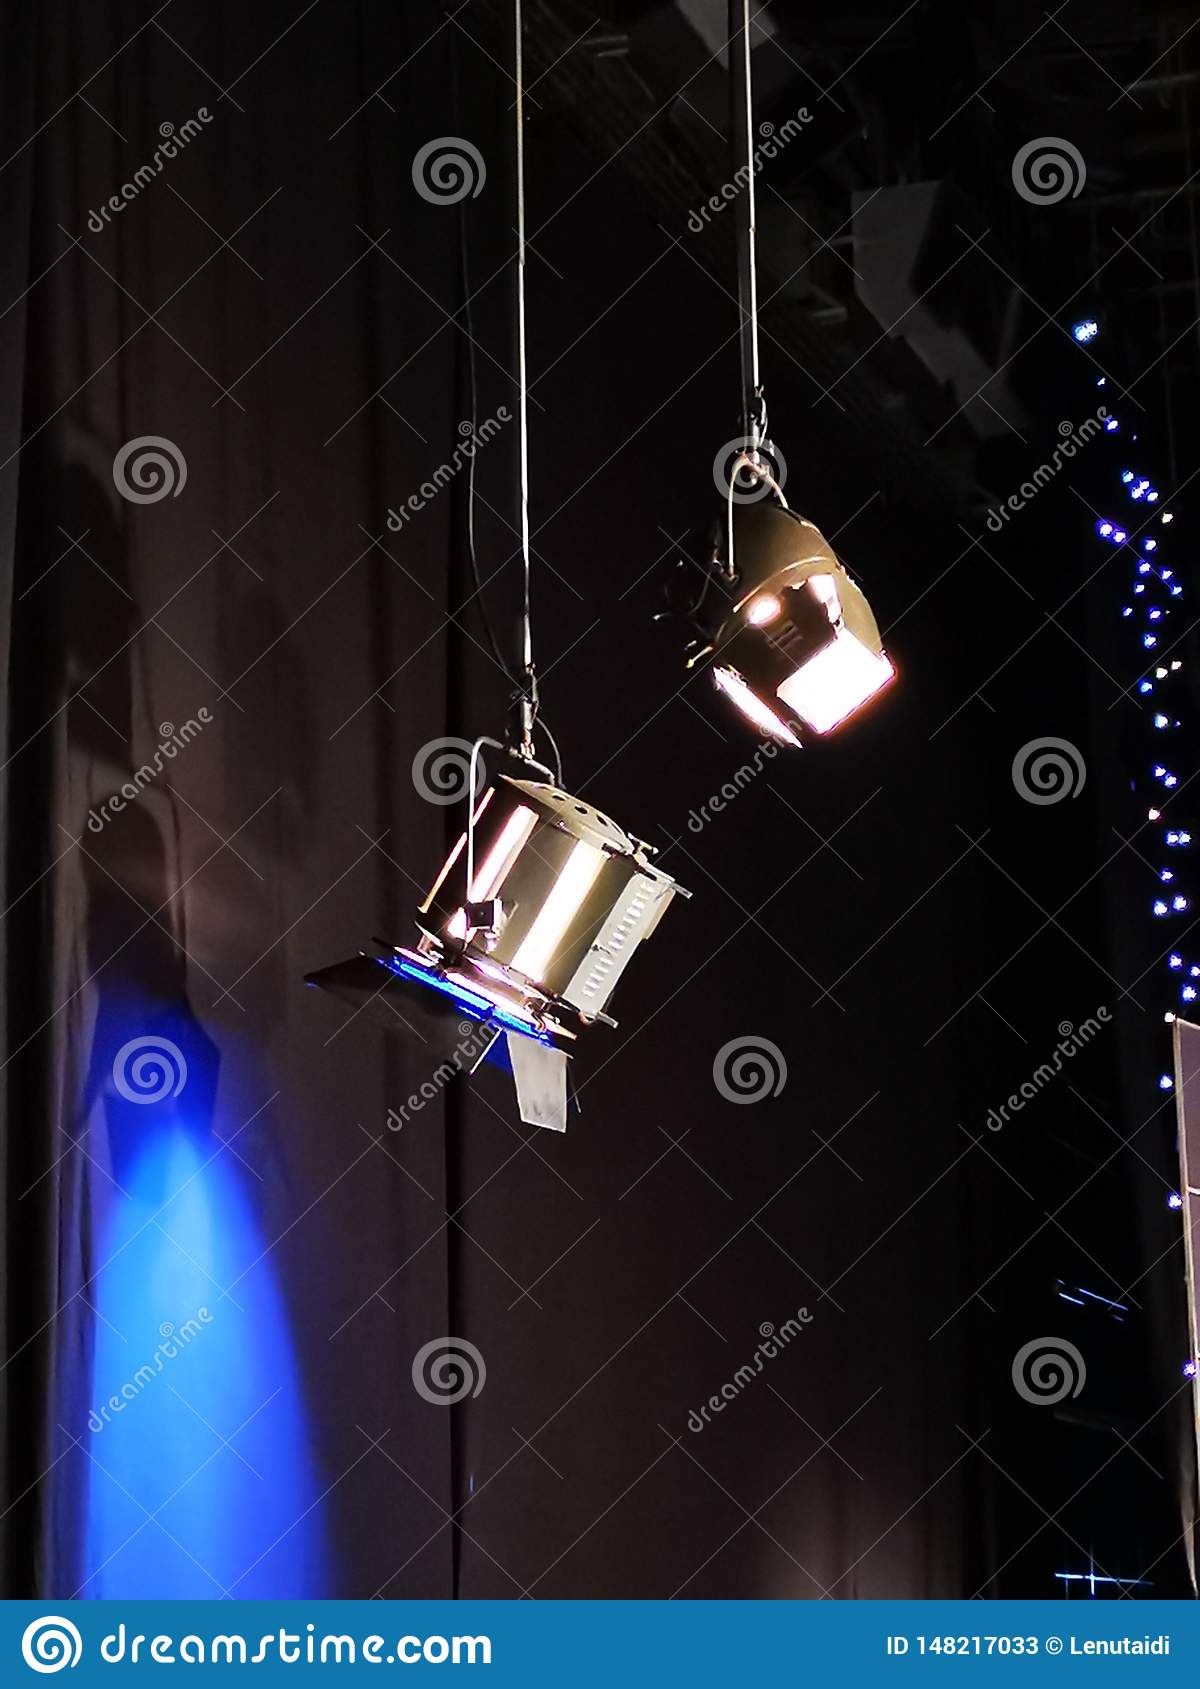 Two projectors lit in a television studio - one with a blue filter